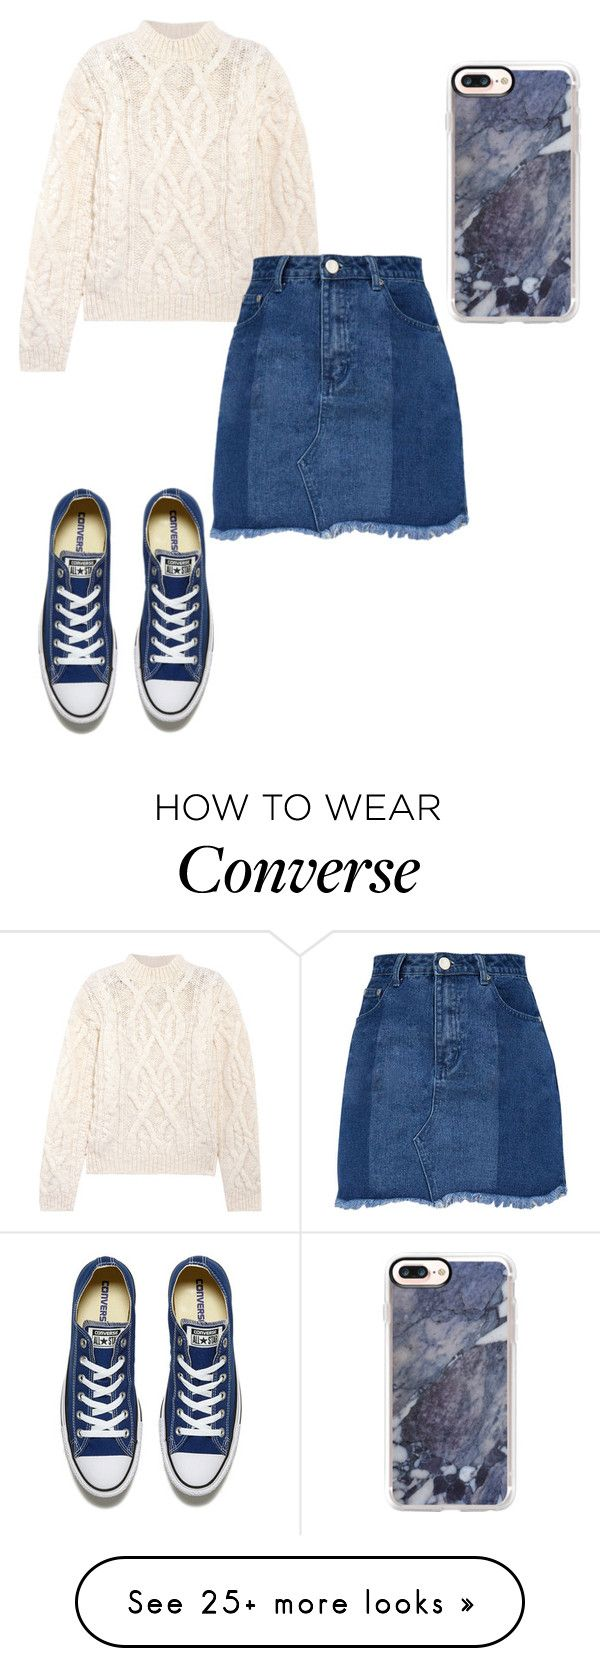 """Untitled #121"" by addieraedesigns on Polyvore featuring Casetify, Acne Studios and Converse"